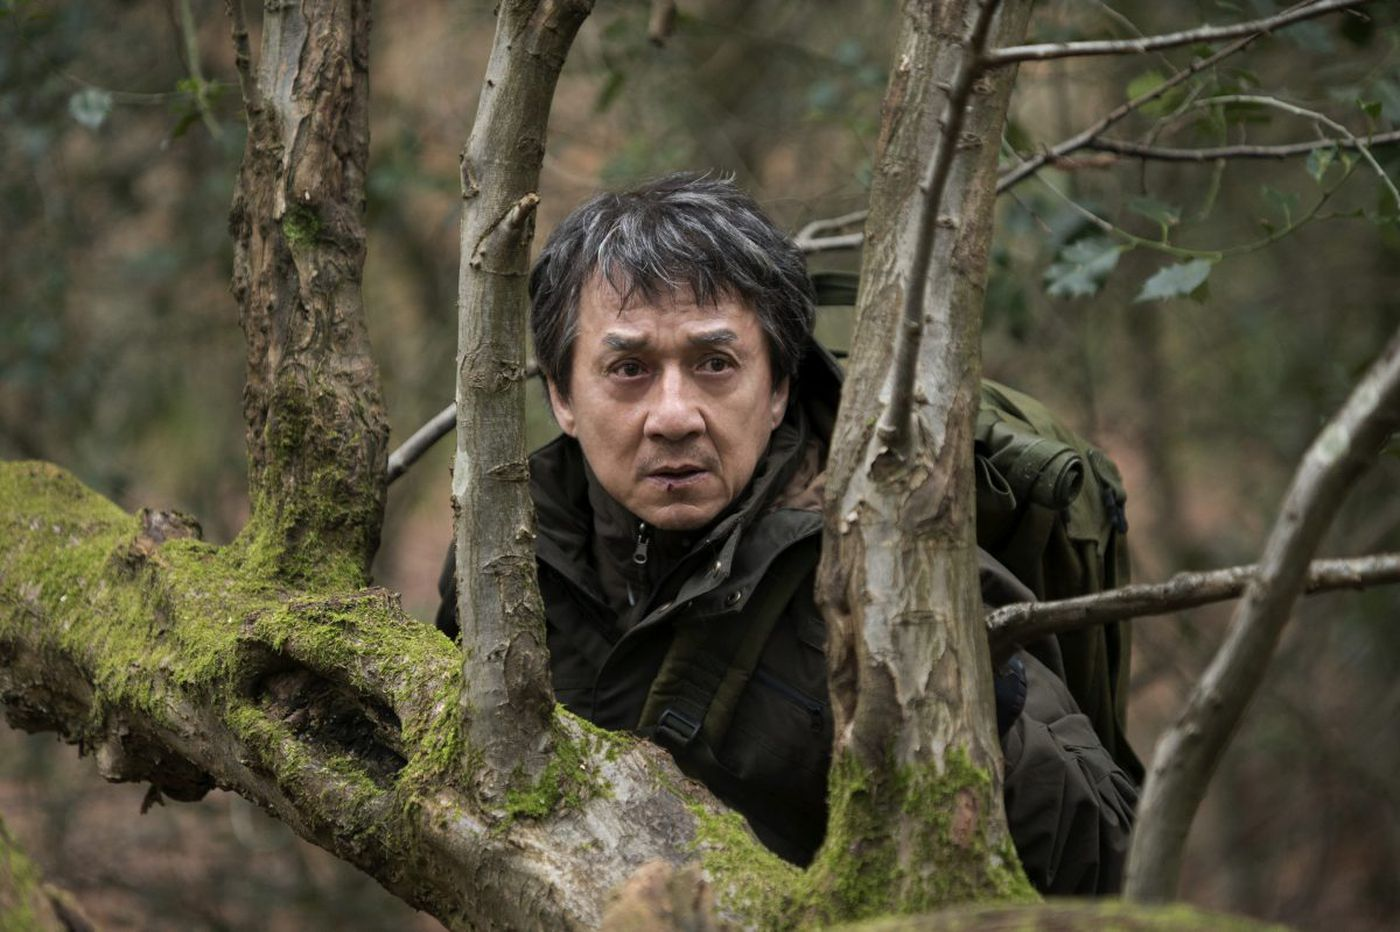 Jackie Chan gets his revenge in 'The Foreigner'